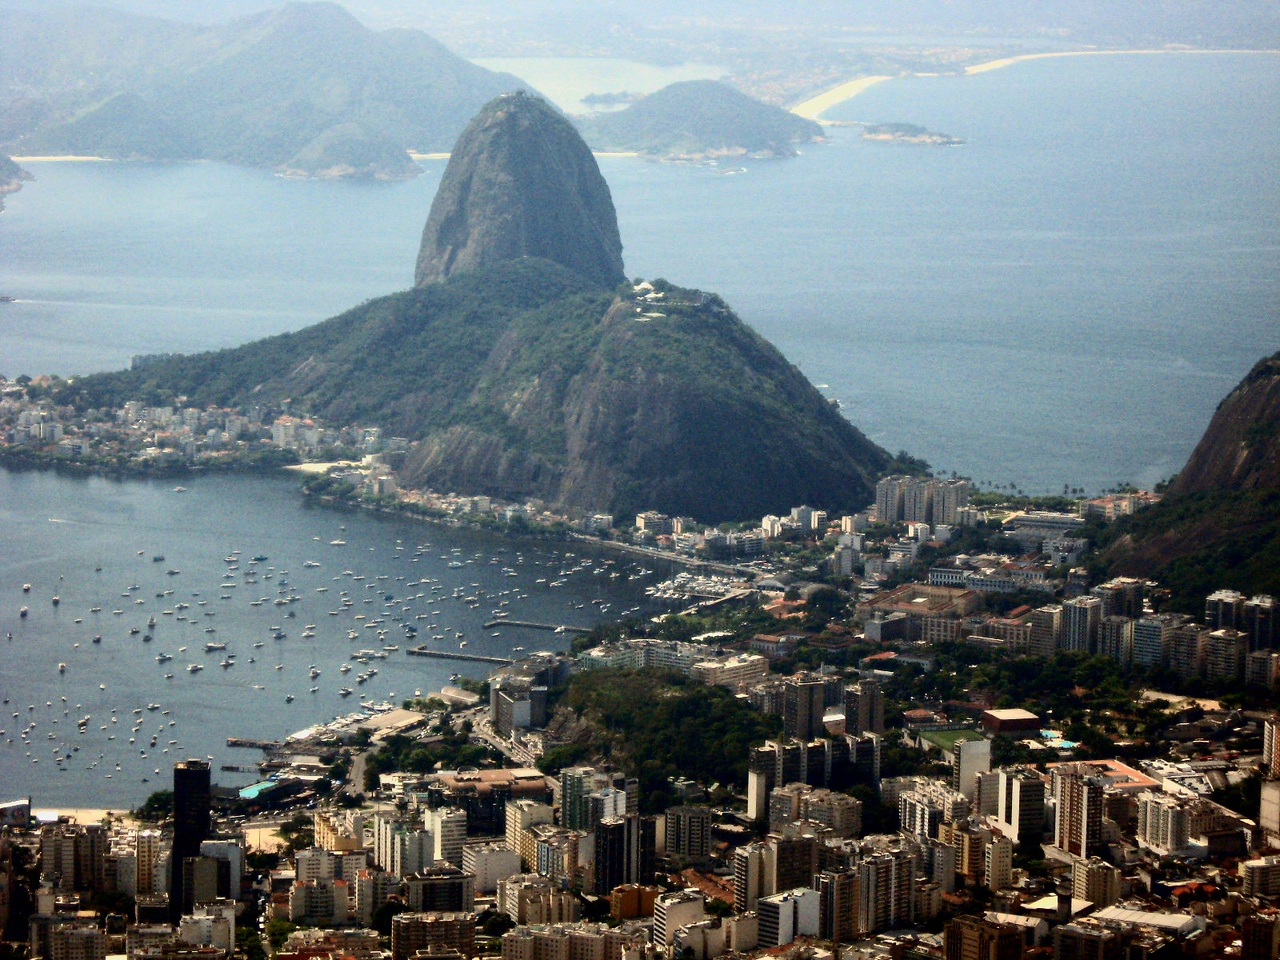 From Cristo Redentor--a view of Sugar Loaf.